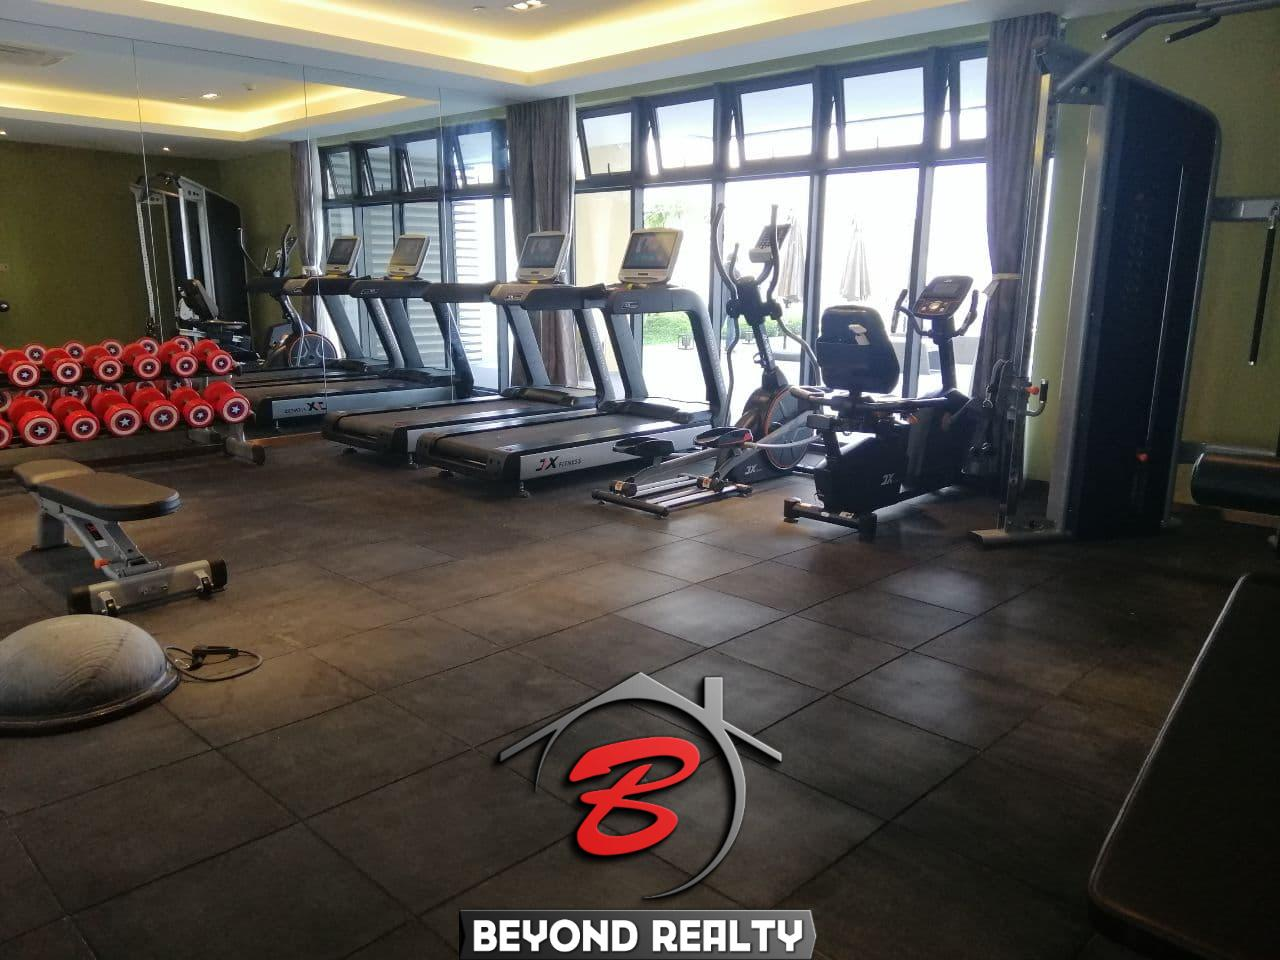 the gym of the luxury serviced condo for rent in Veal Vong 7 Makara Phnom Penh